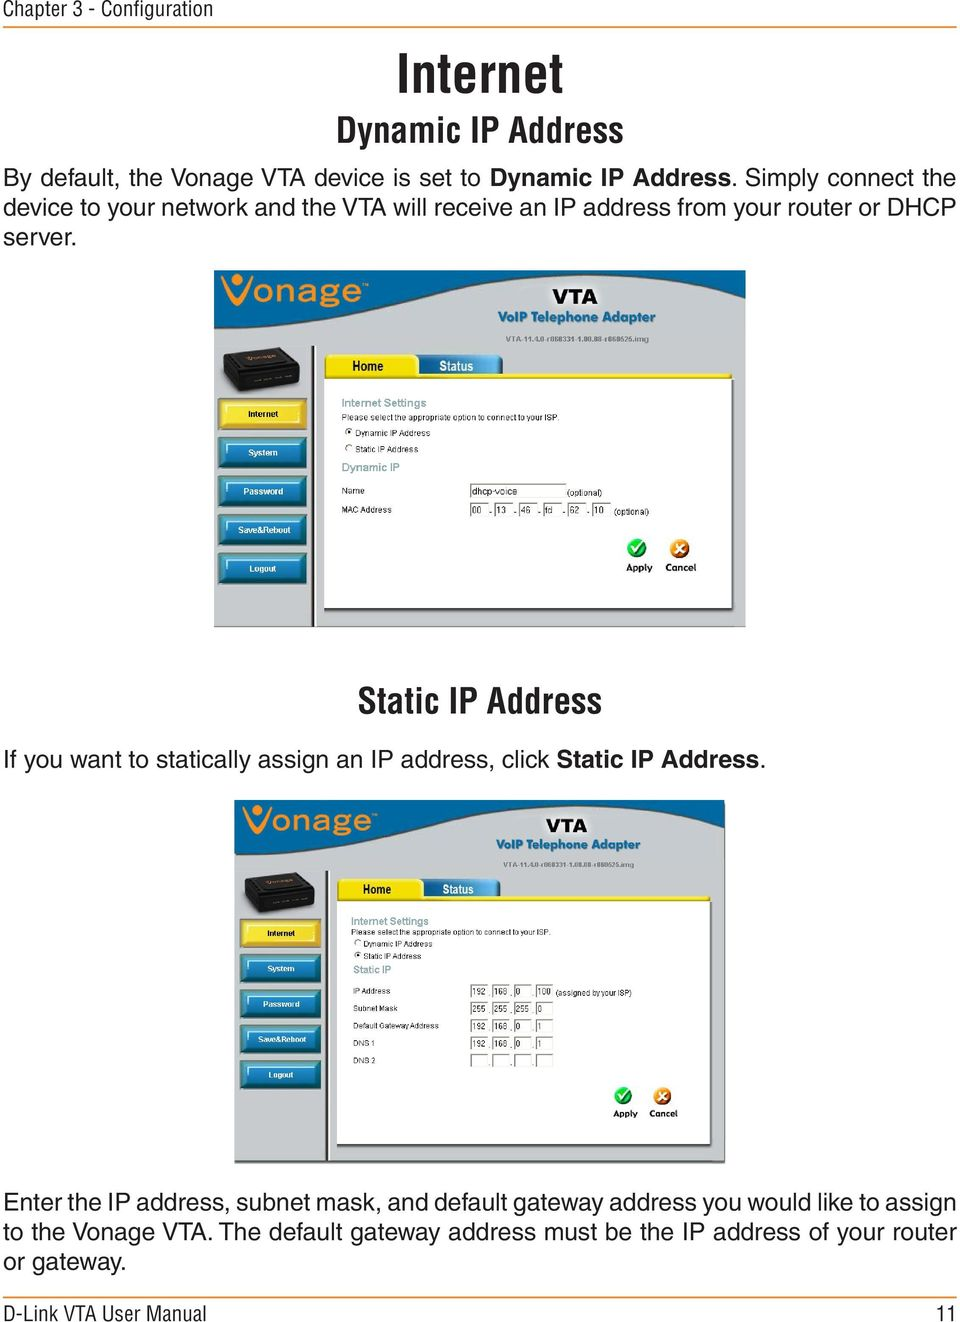 hight resolution of static ip address if you want to statically assign an ip address click static ip